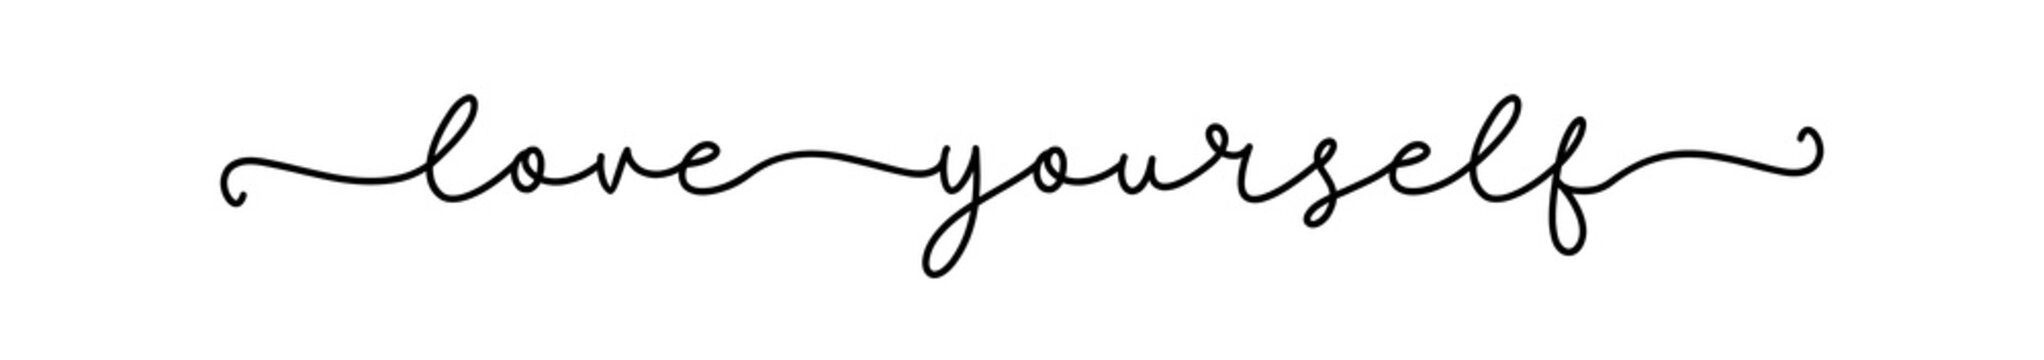 LOVE YOURSELF. Positive script quote. Continuous line cursive text love yourself. Lettering vector illustration for poster, card, t-shirt, tee. Hand drawn motivation slogan - love yourself.